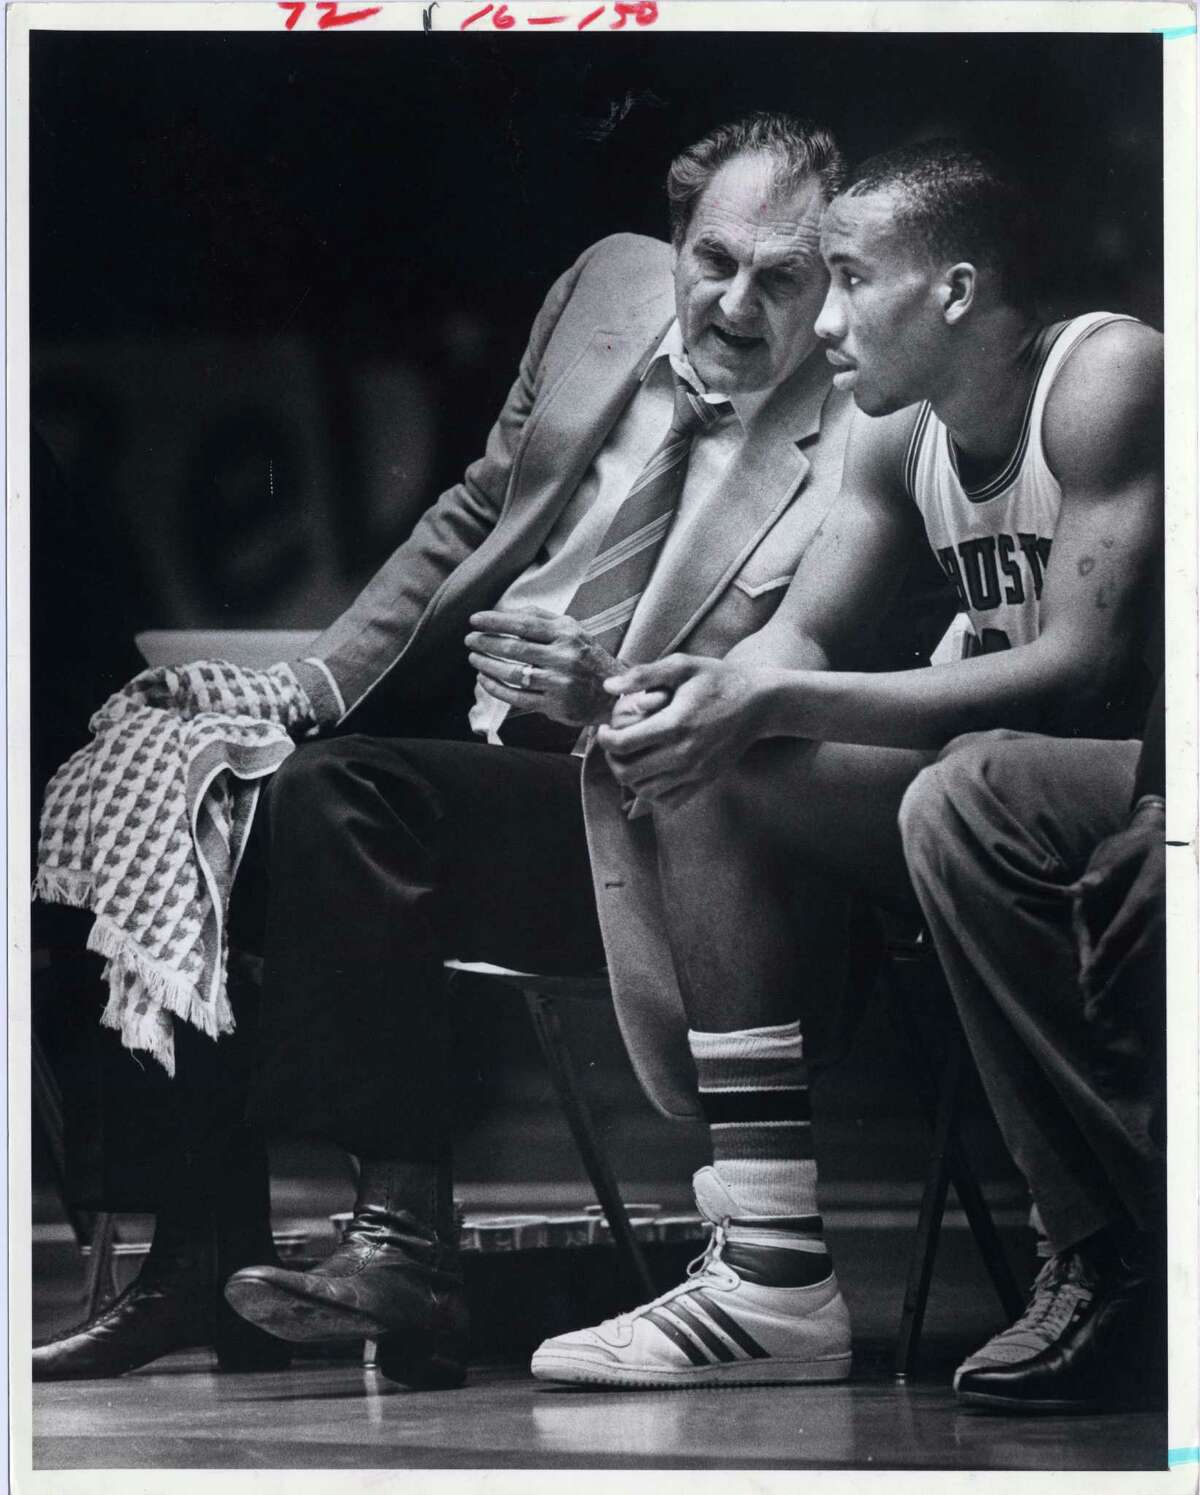 Guy Lewis was one of the first college basketball coaches who recruited African-Americans during the 1960s.